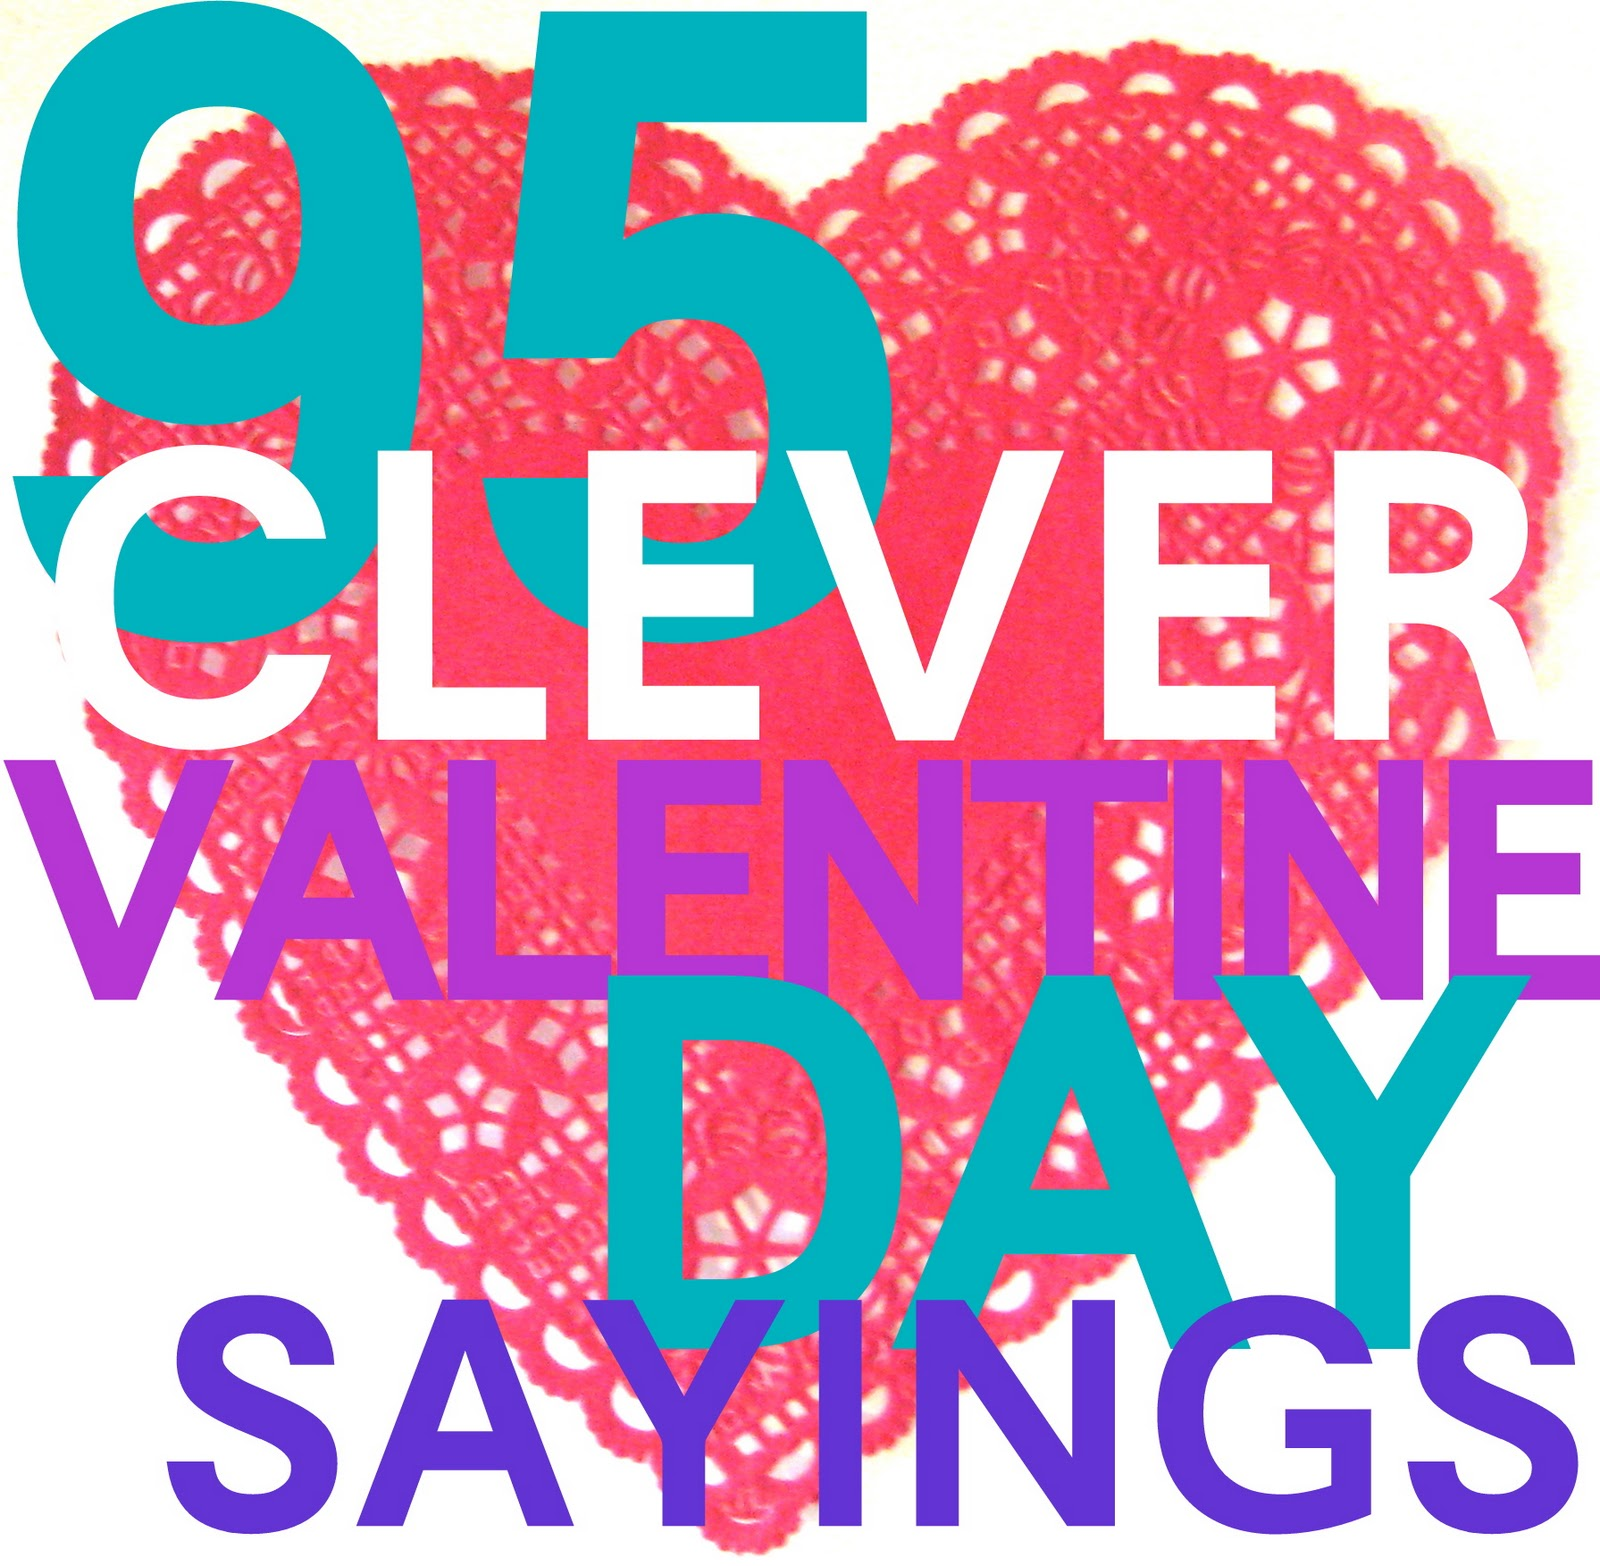 154 Clever Valentines Day Sayings